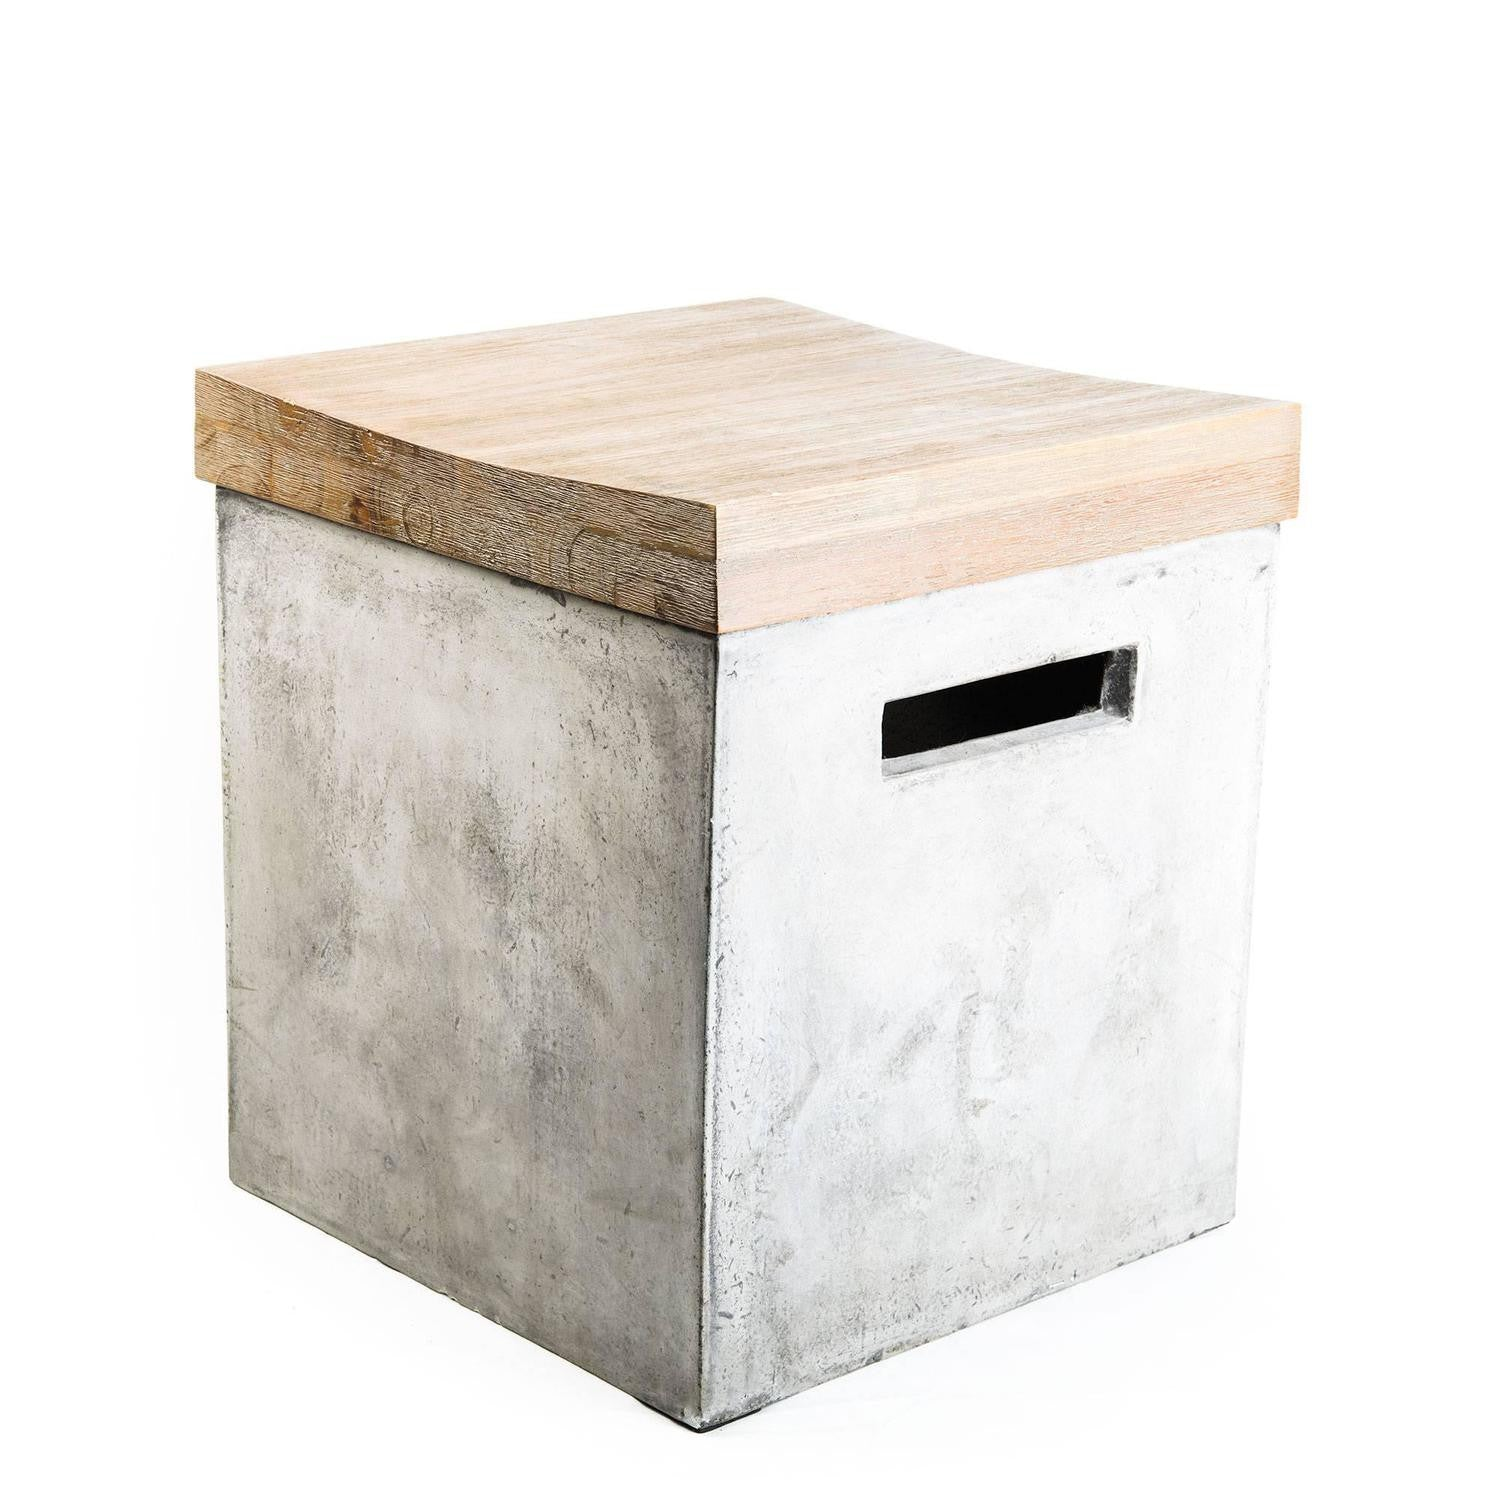 Fine Concrete Stool With Wood Seat Caraccident5 Cool Chair Designs And Ideas Caraccident5Info